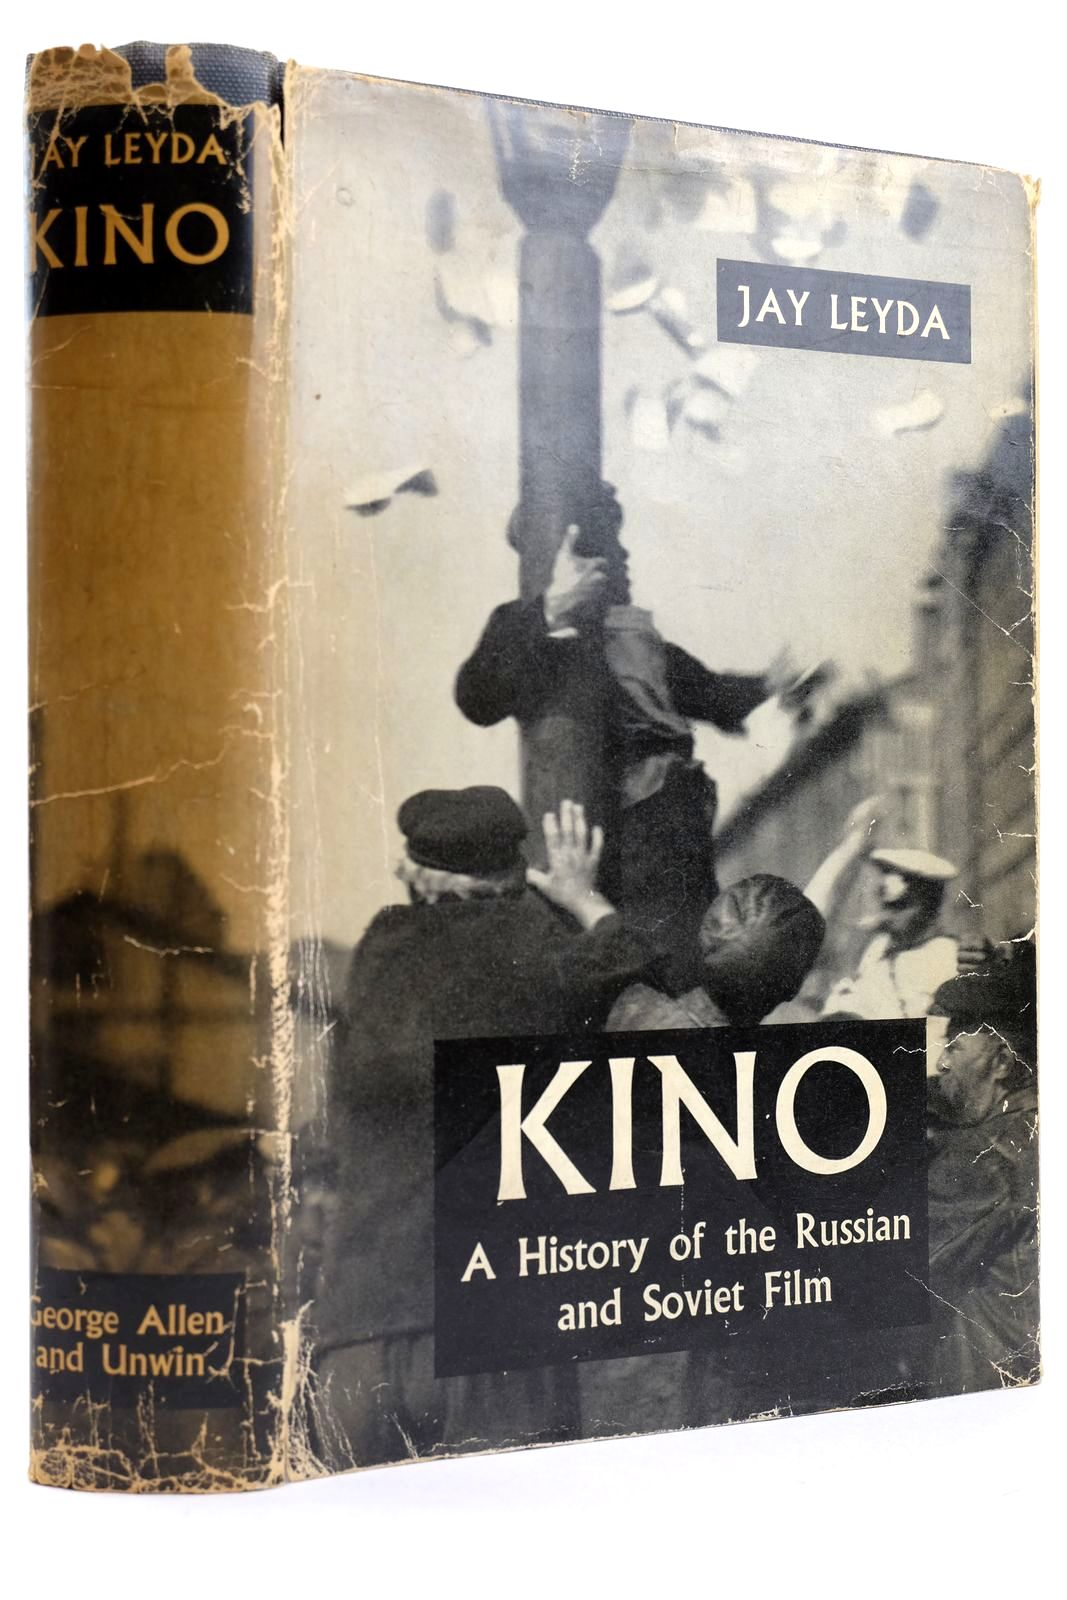 Photo of KINO A HISTORY OF THE RUSSIAN AND SOVIET FILM written by Leyda, Jay published by George Allen & Unwin Ltd. (STOCK CODE: 2132505)  for sale by Stella & Rose's Books